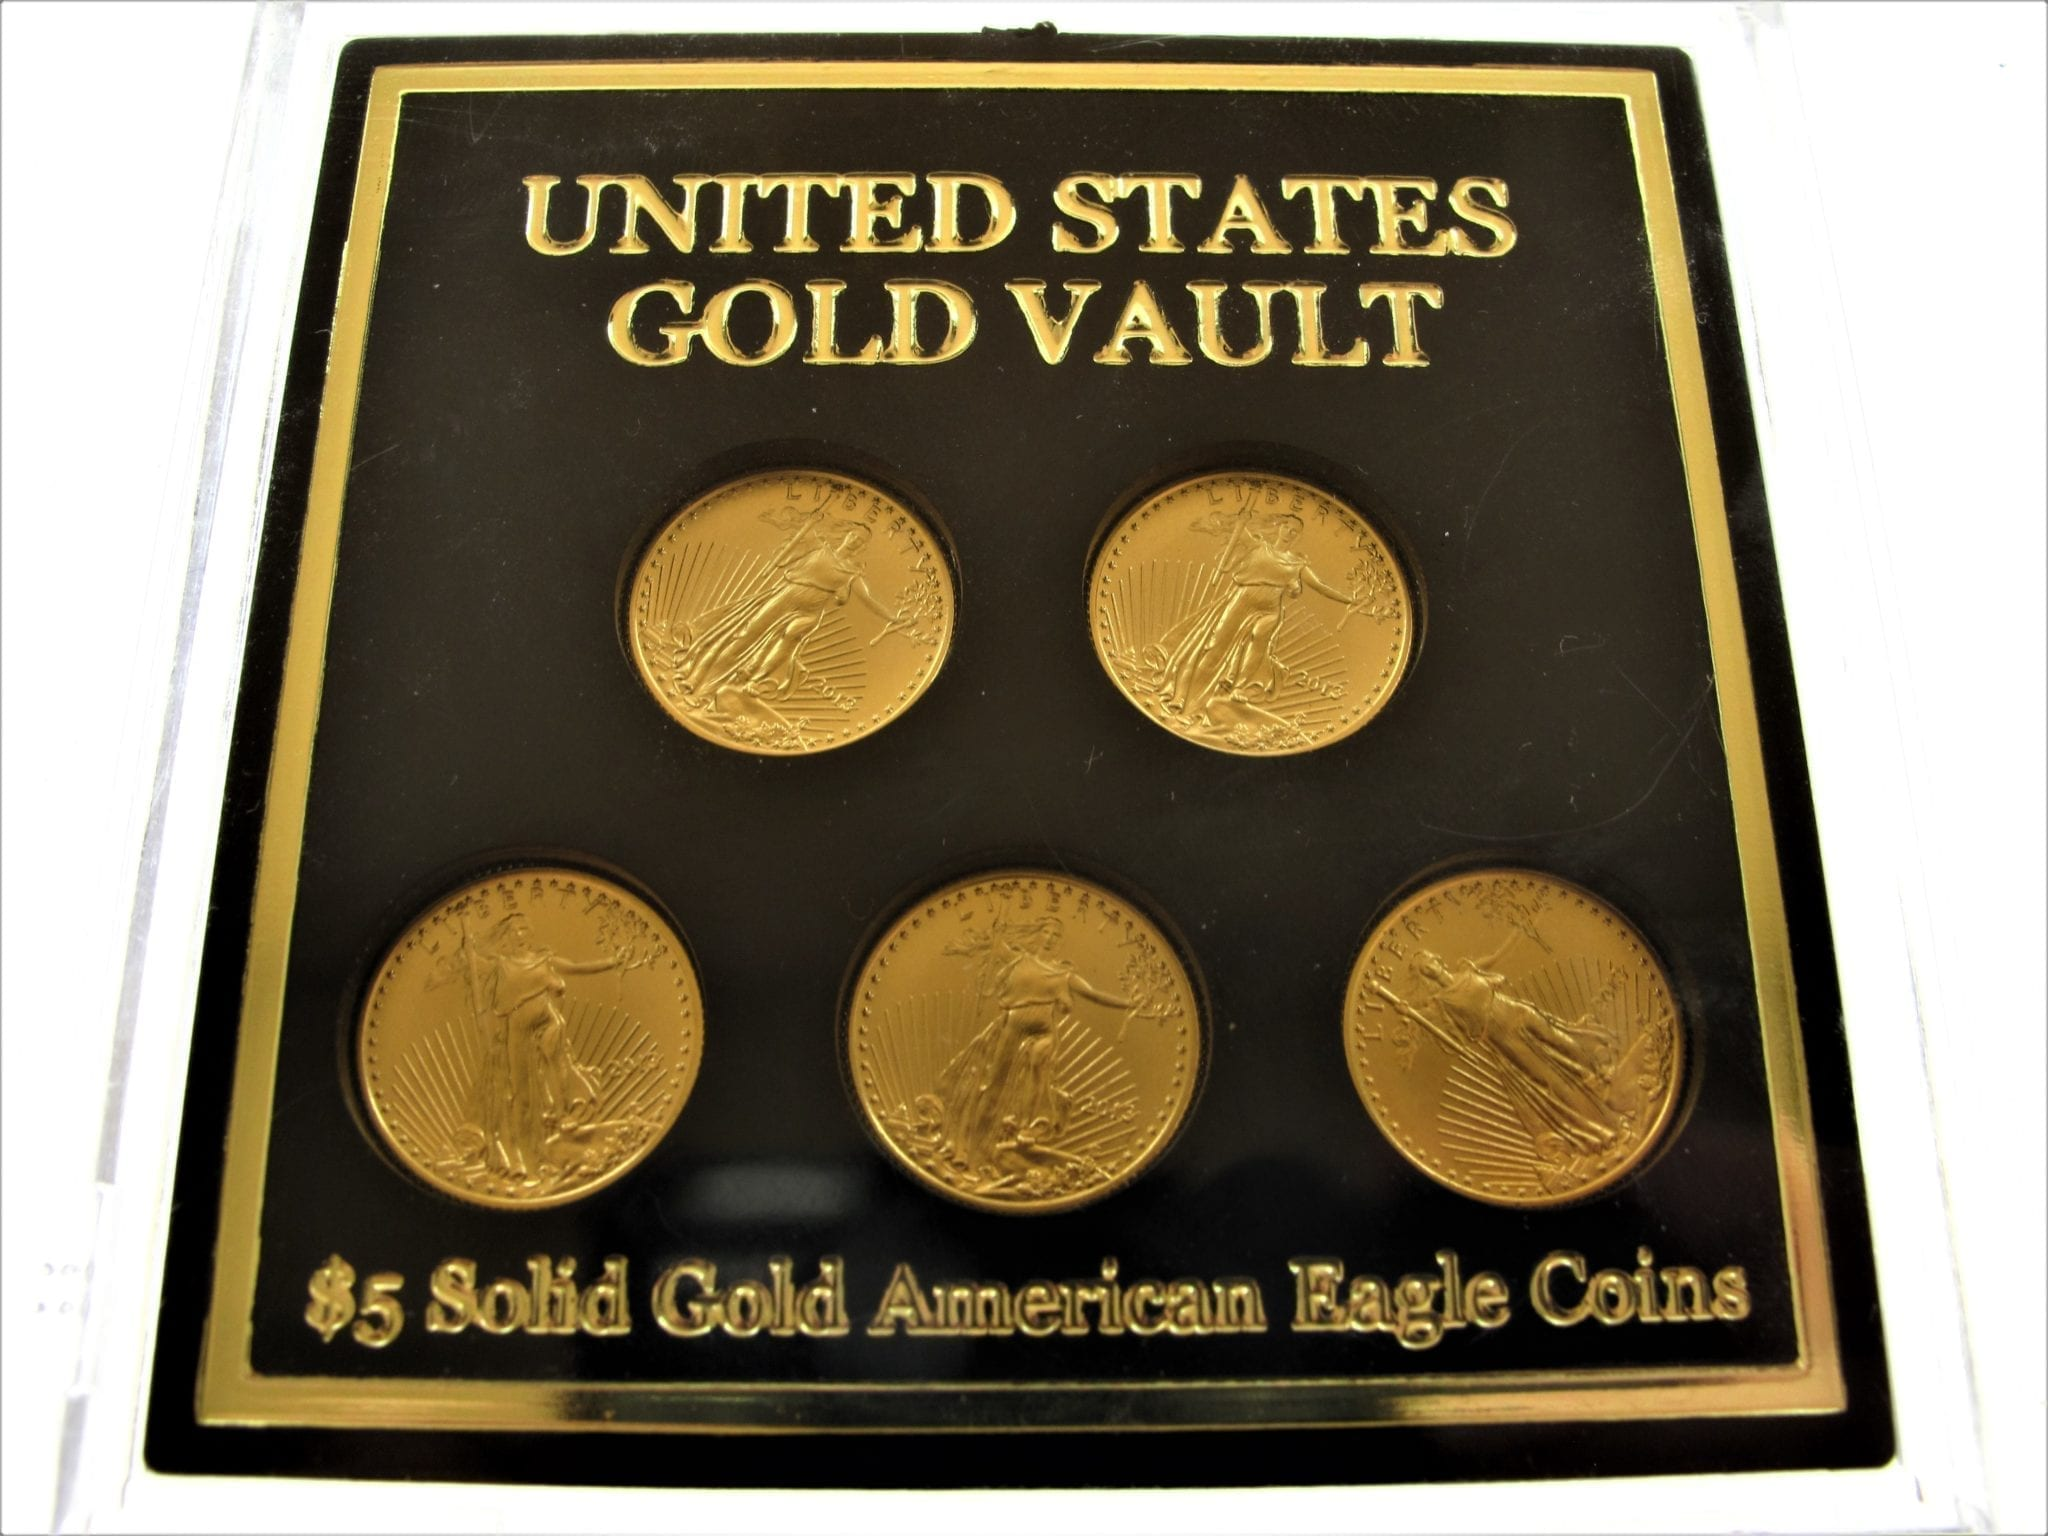 2013 United States Gold Vault 5 Solid Gold American